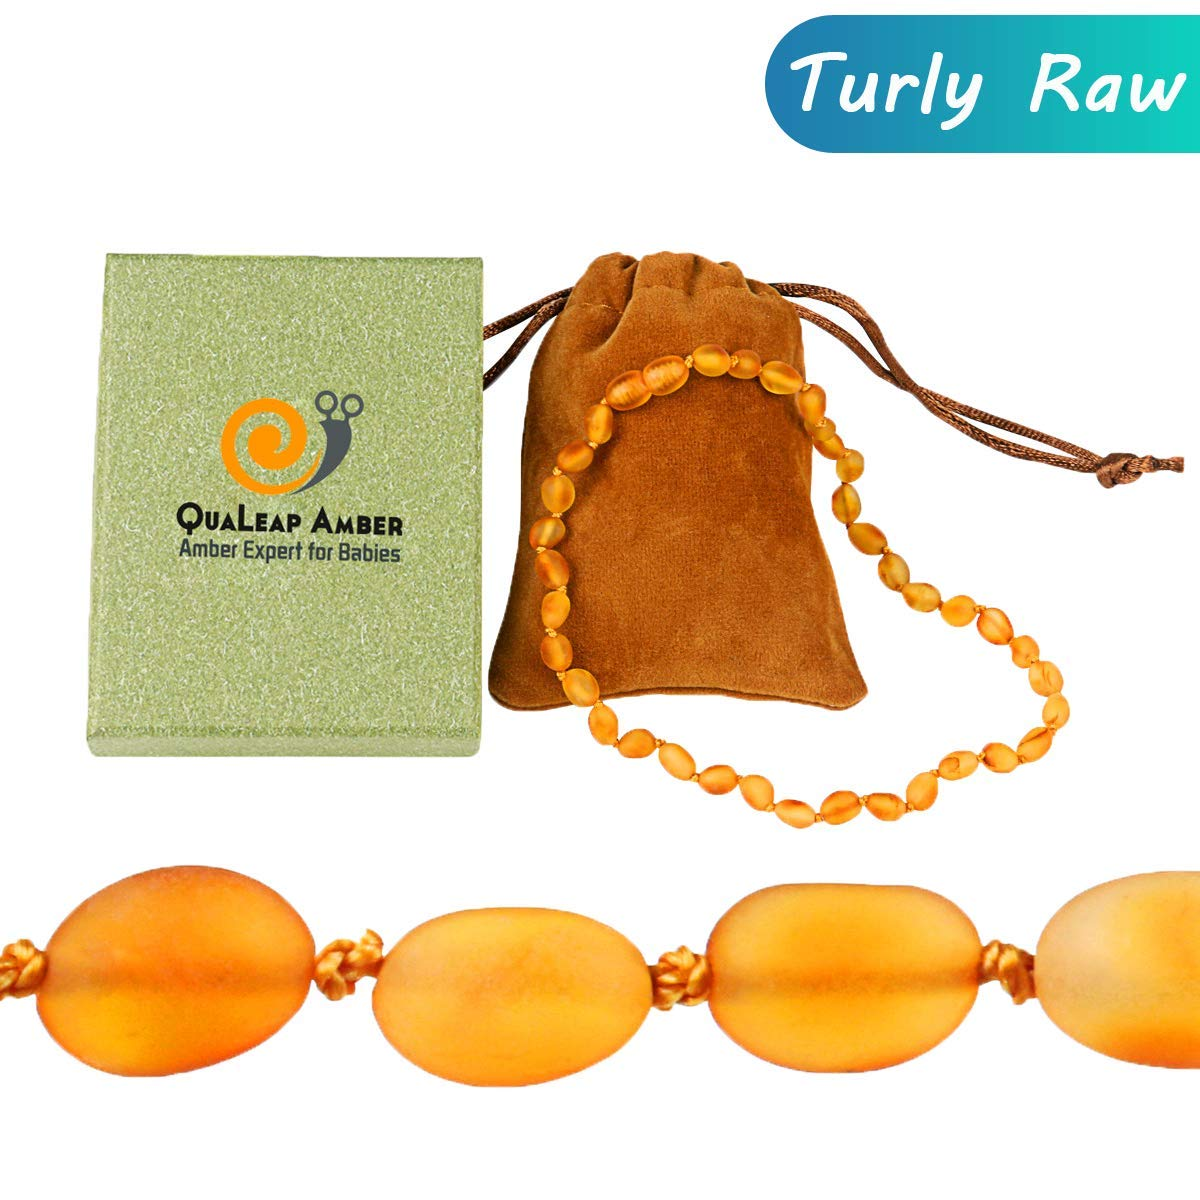 Raw Baltic Amber Teething Necklace for Baby (Unisex - Raw Cherry - 12.5 Inches), 100% Authentic Unpolished Amber Necklace for Infant & Toddler Teething Relief QuaLeap Amber